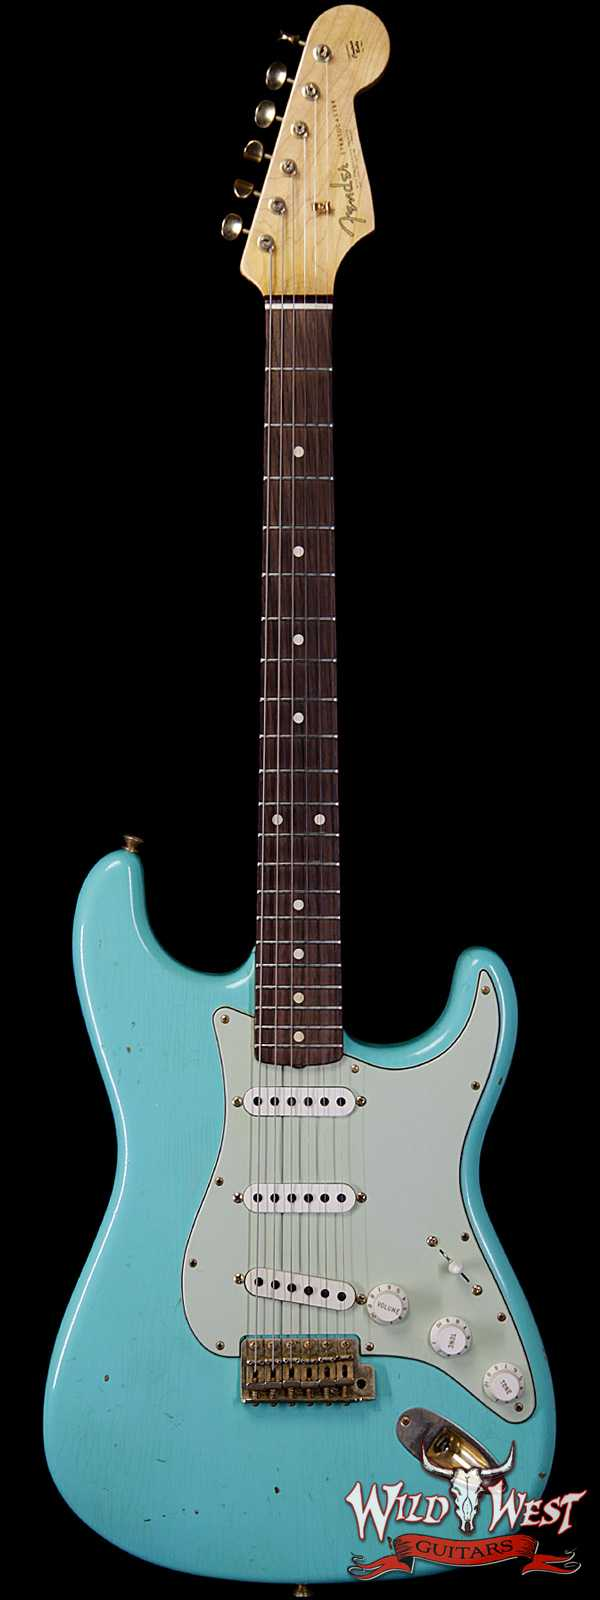 2017 Fender Custom Shop 1963 Stratocaster Journeyman Relic Faded Sea Foam Green Gold Hardware